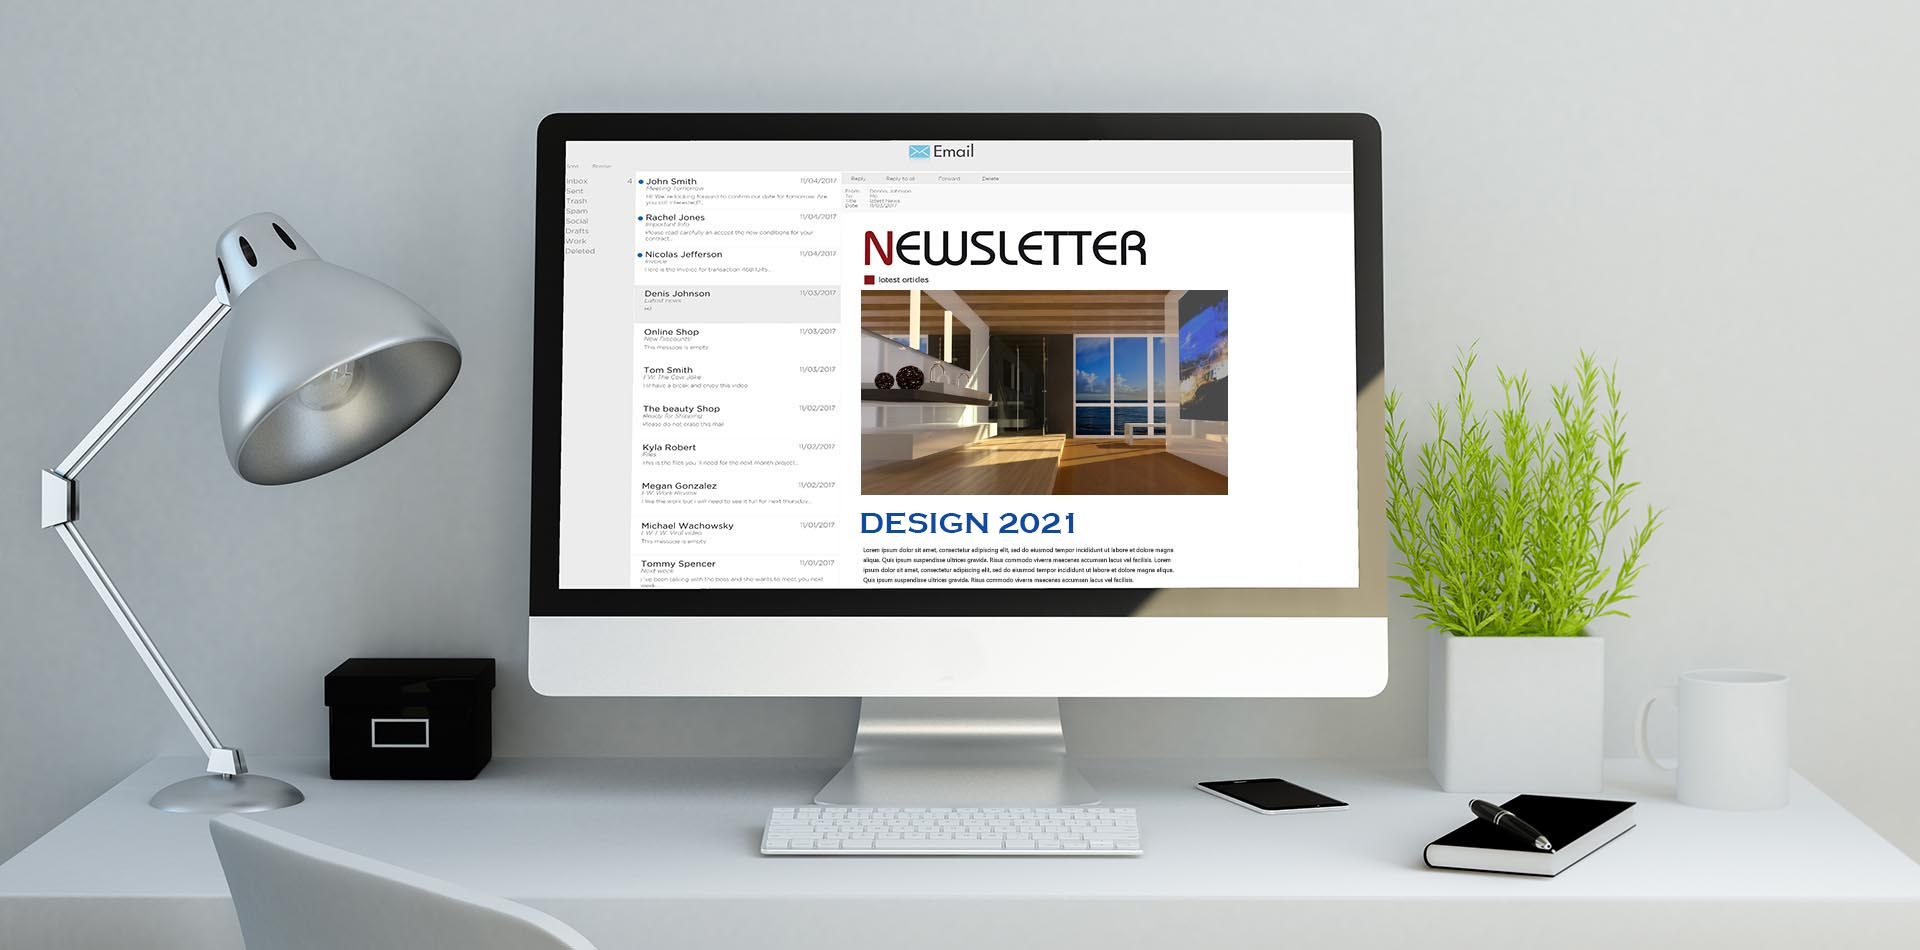 Newsletter Design 2021